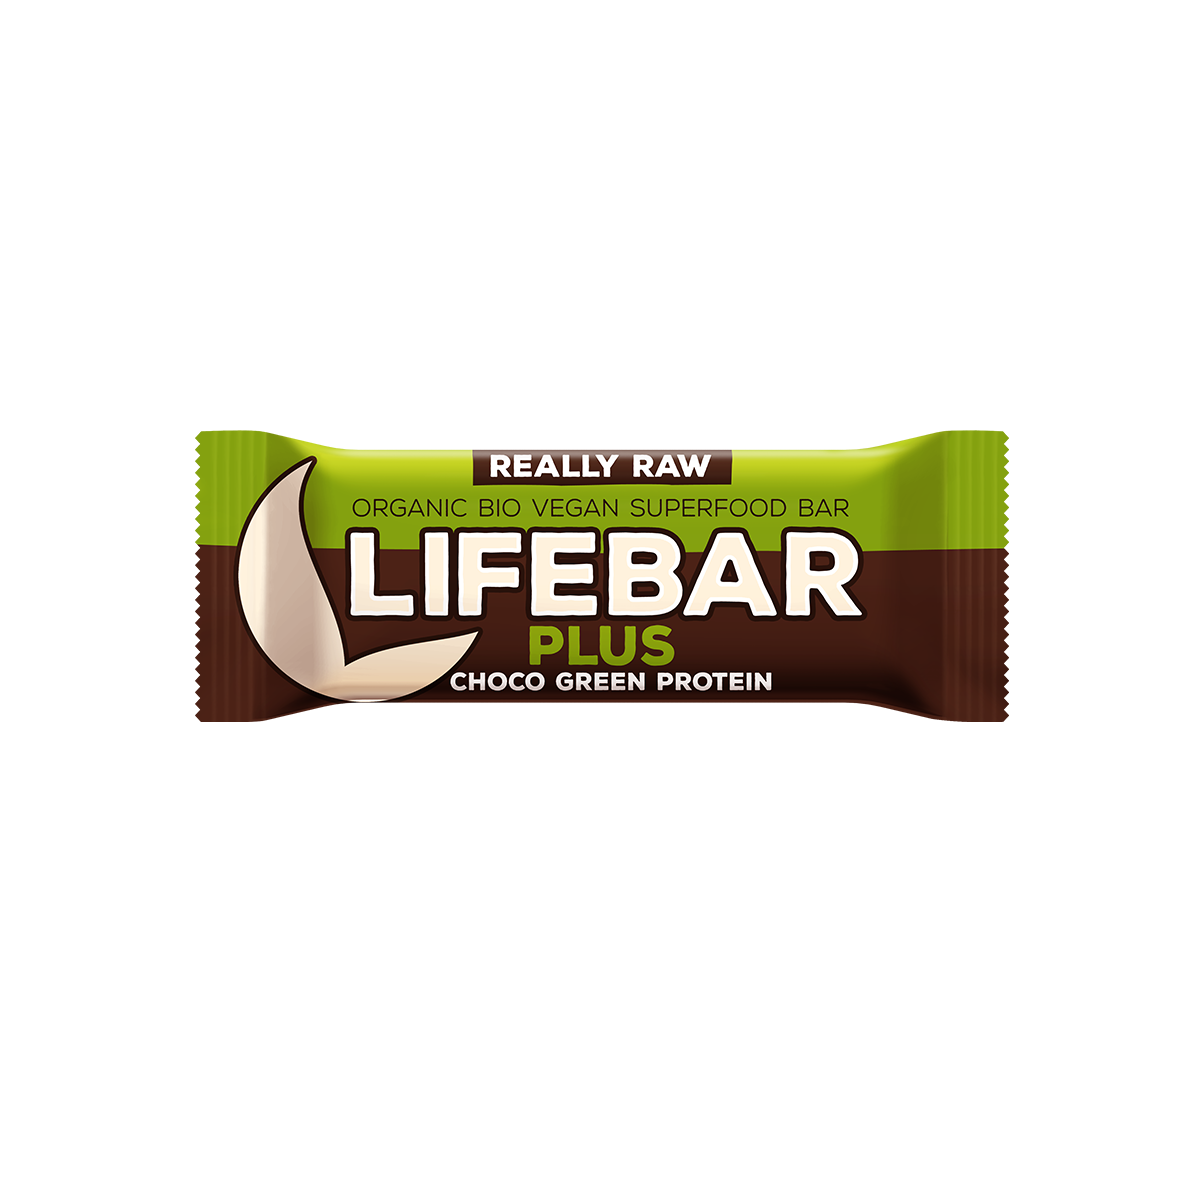 Lifebar energy bars